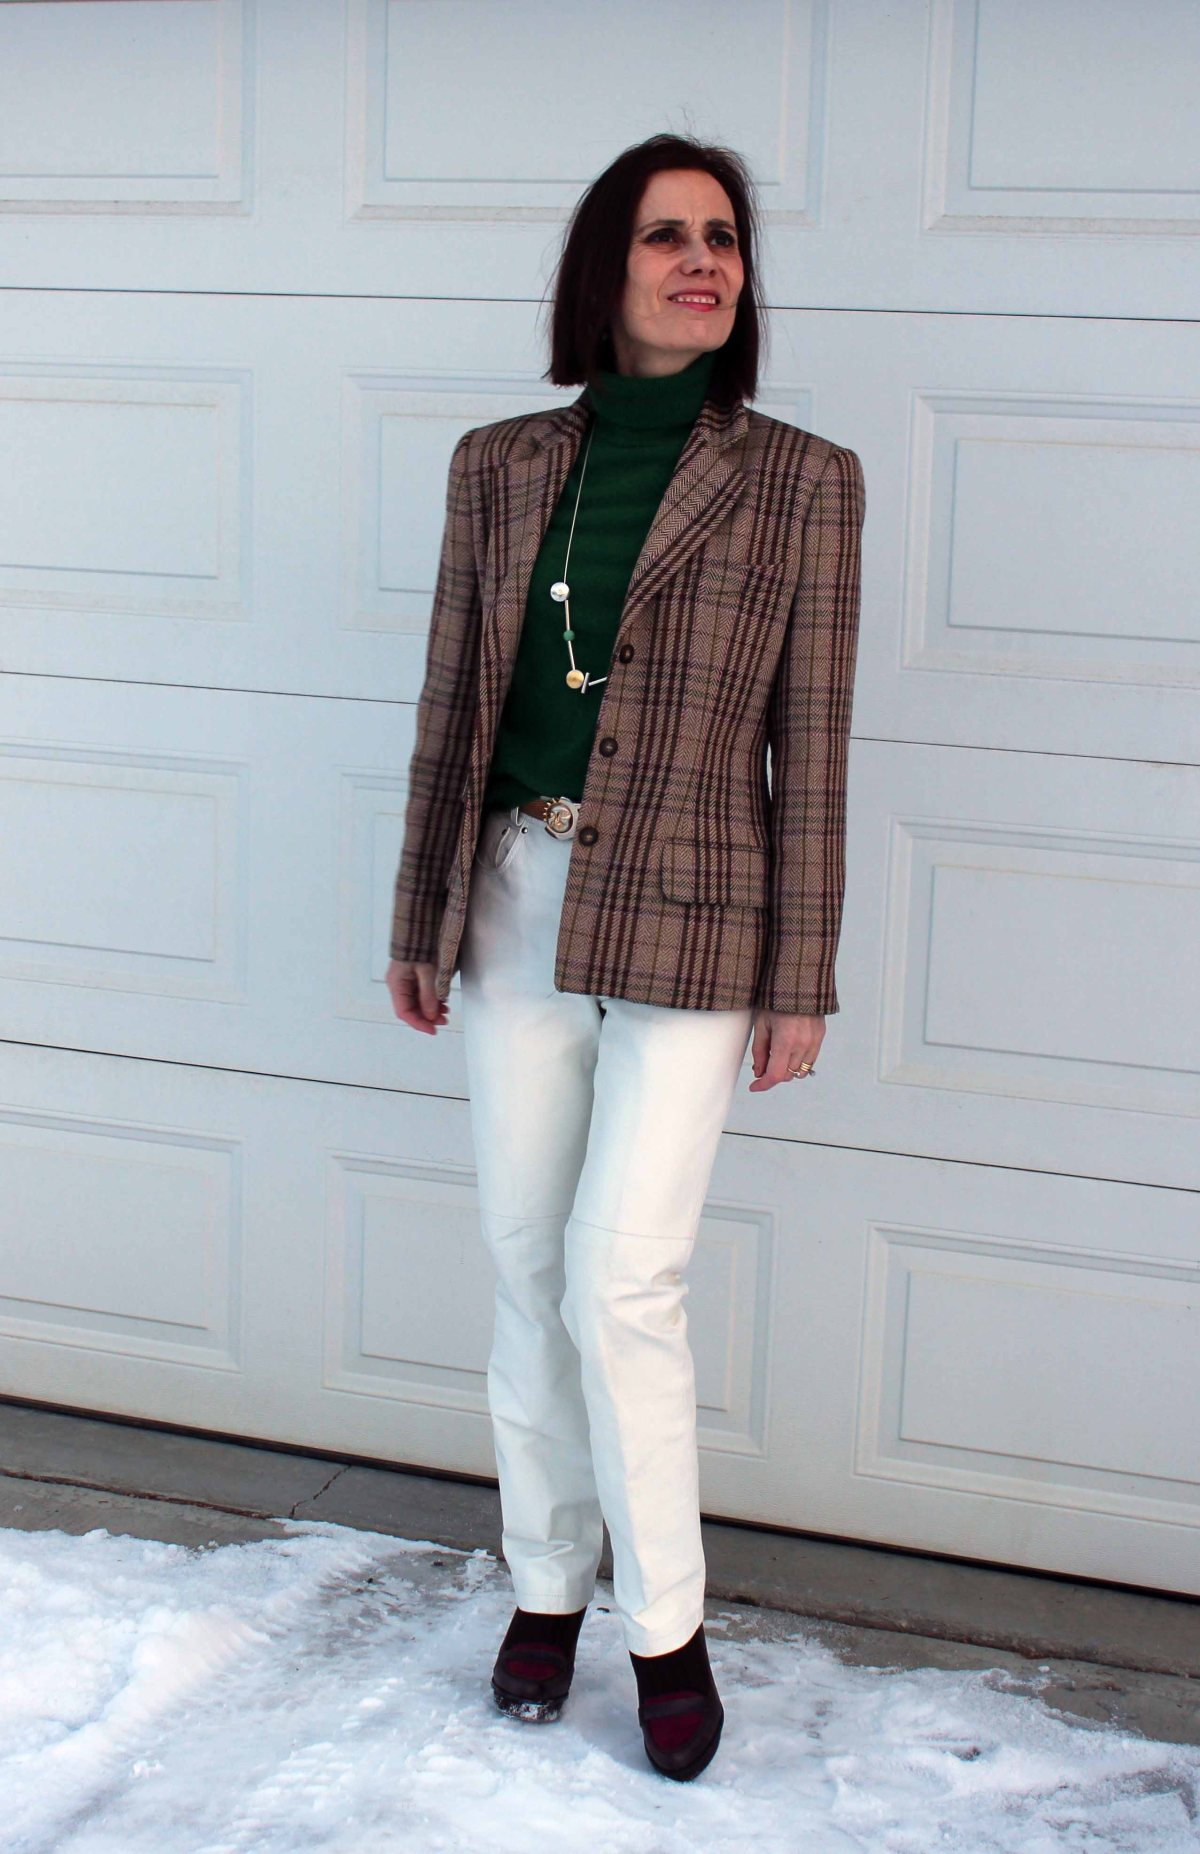 stylistn in white leather pants with tartan blazer and green sweater